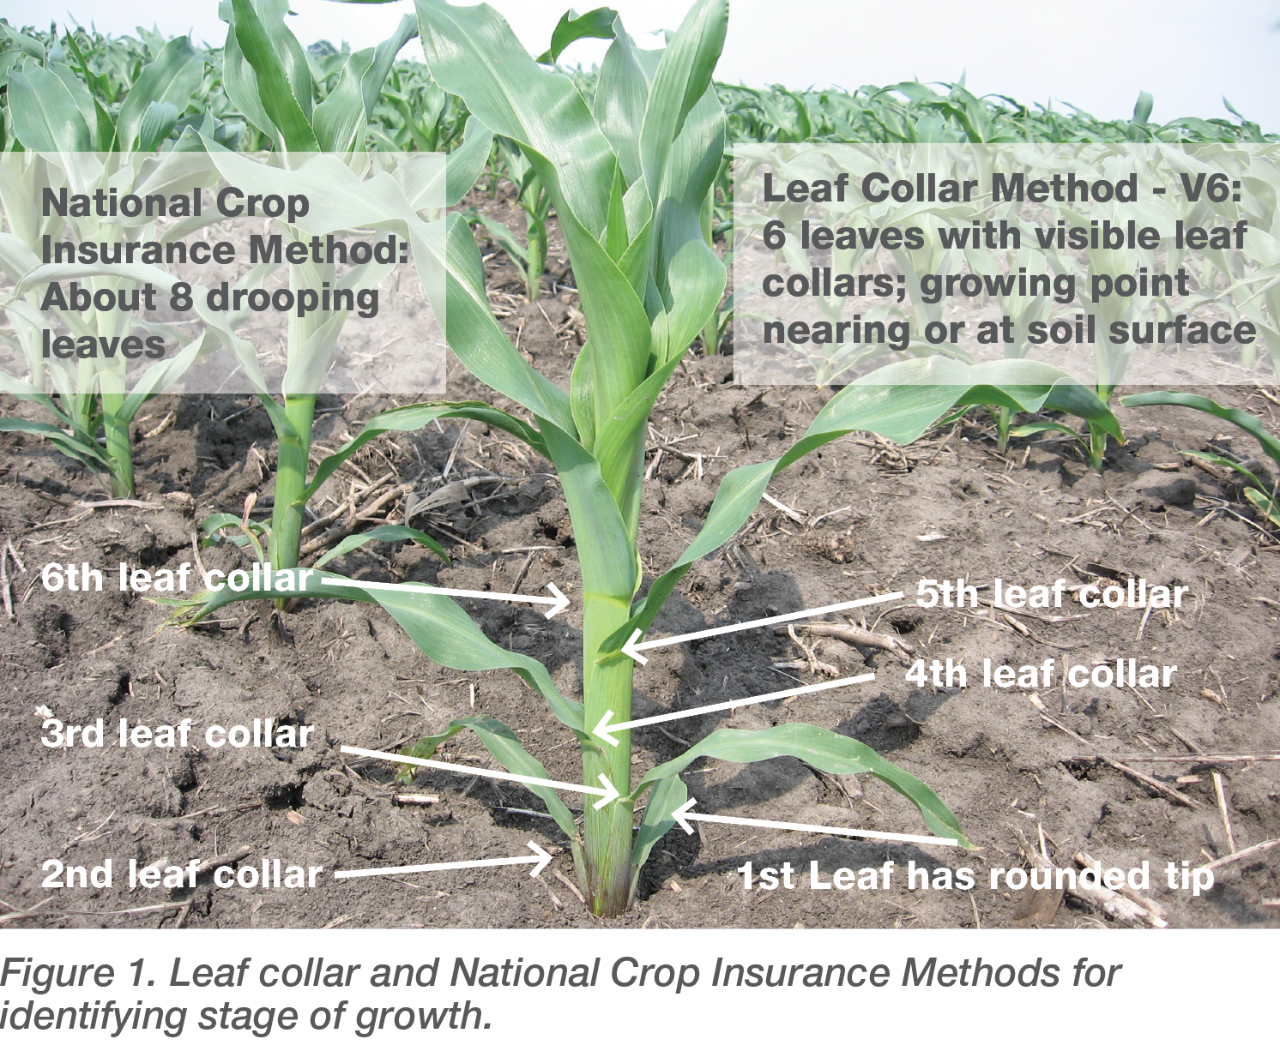 Leaf collar and National Crop Insurance Methods